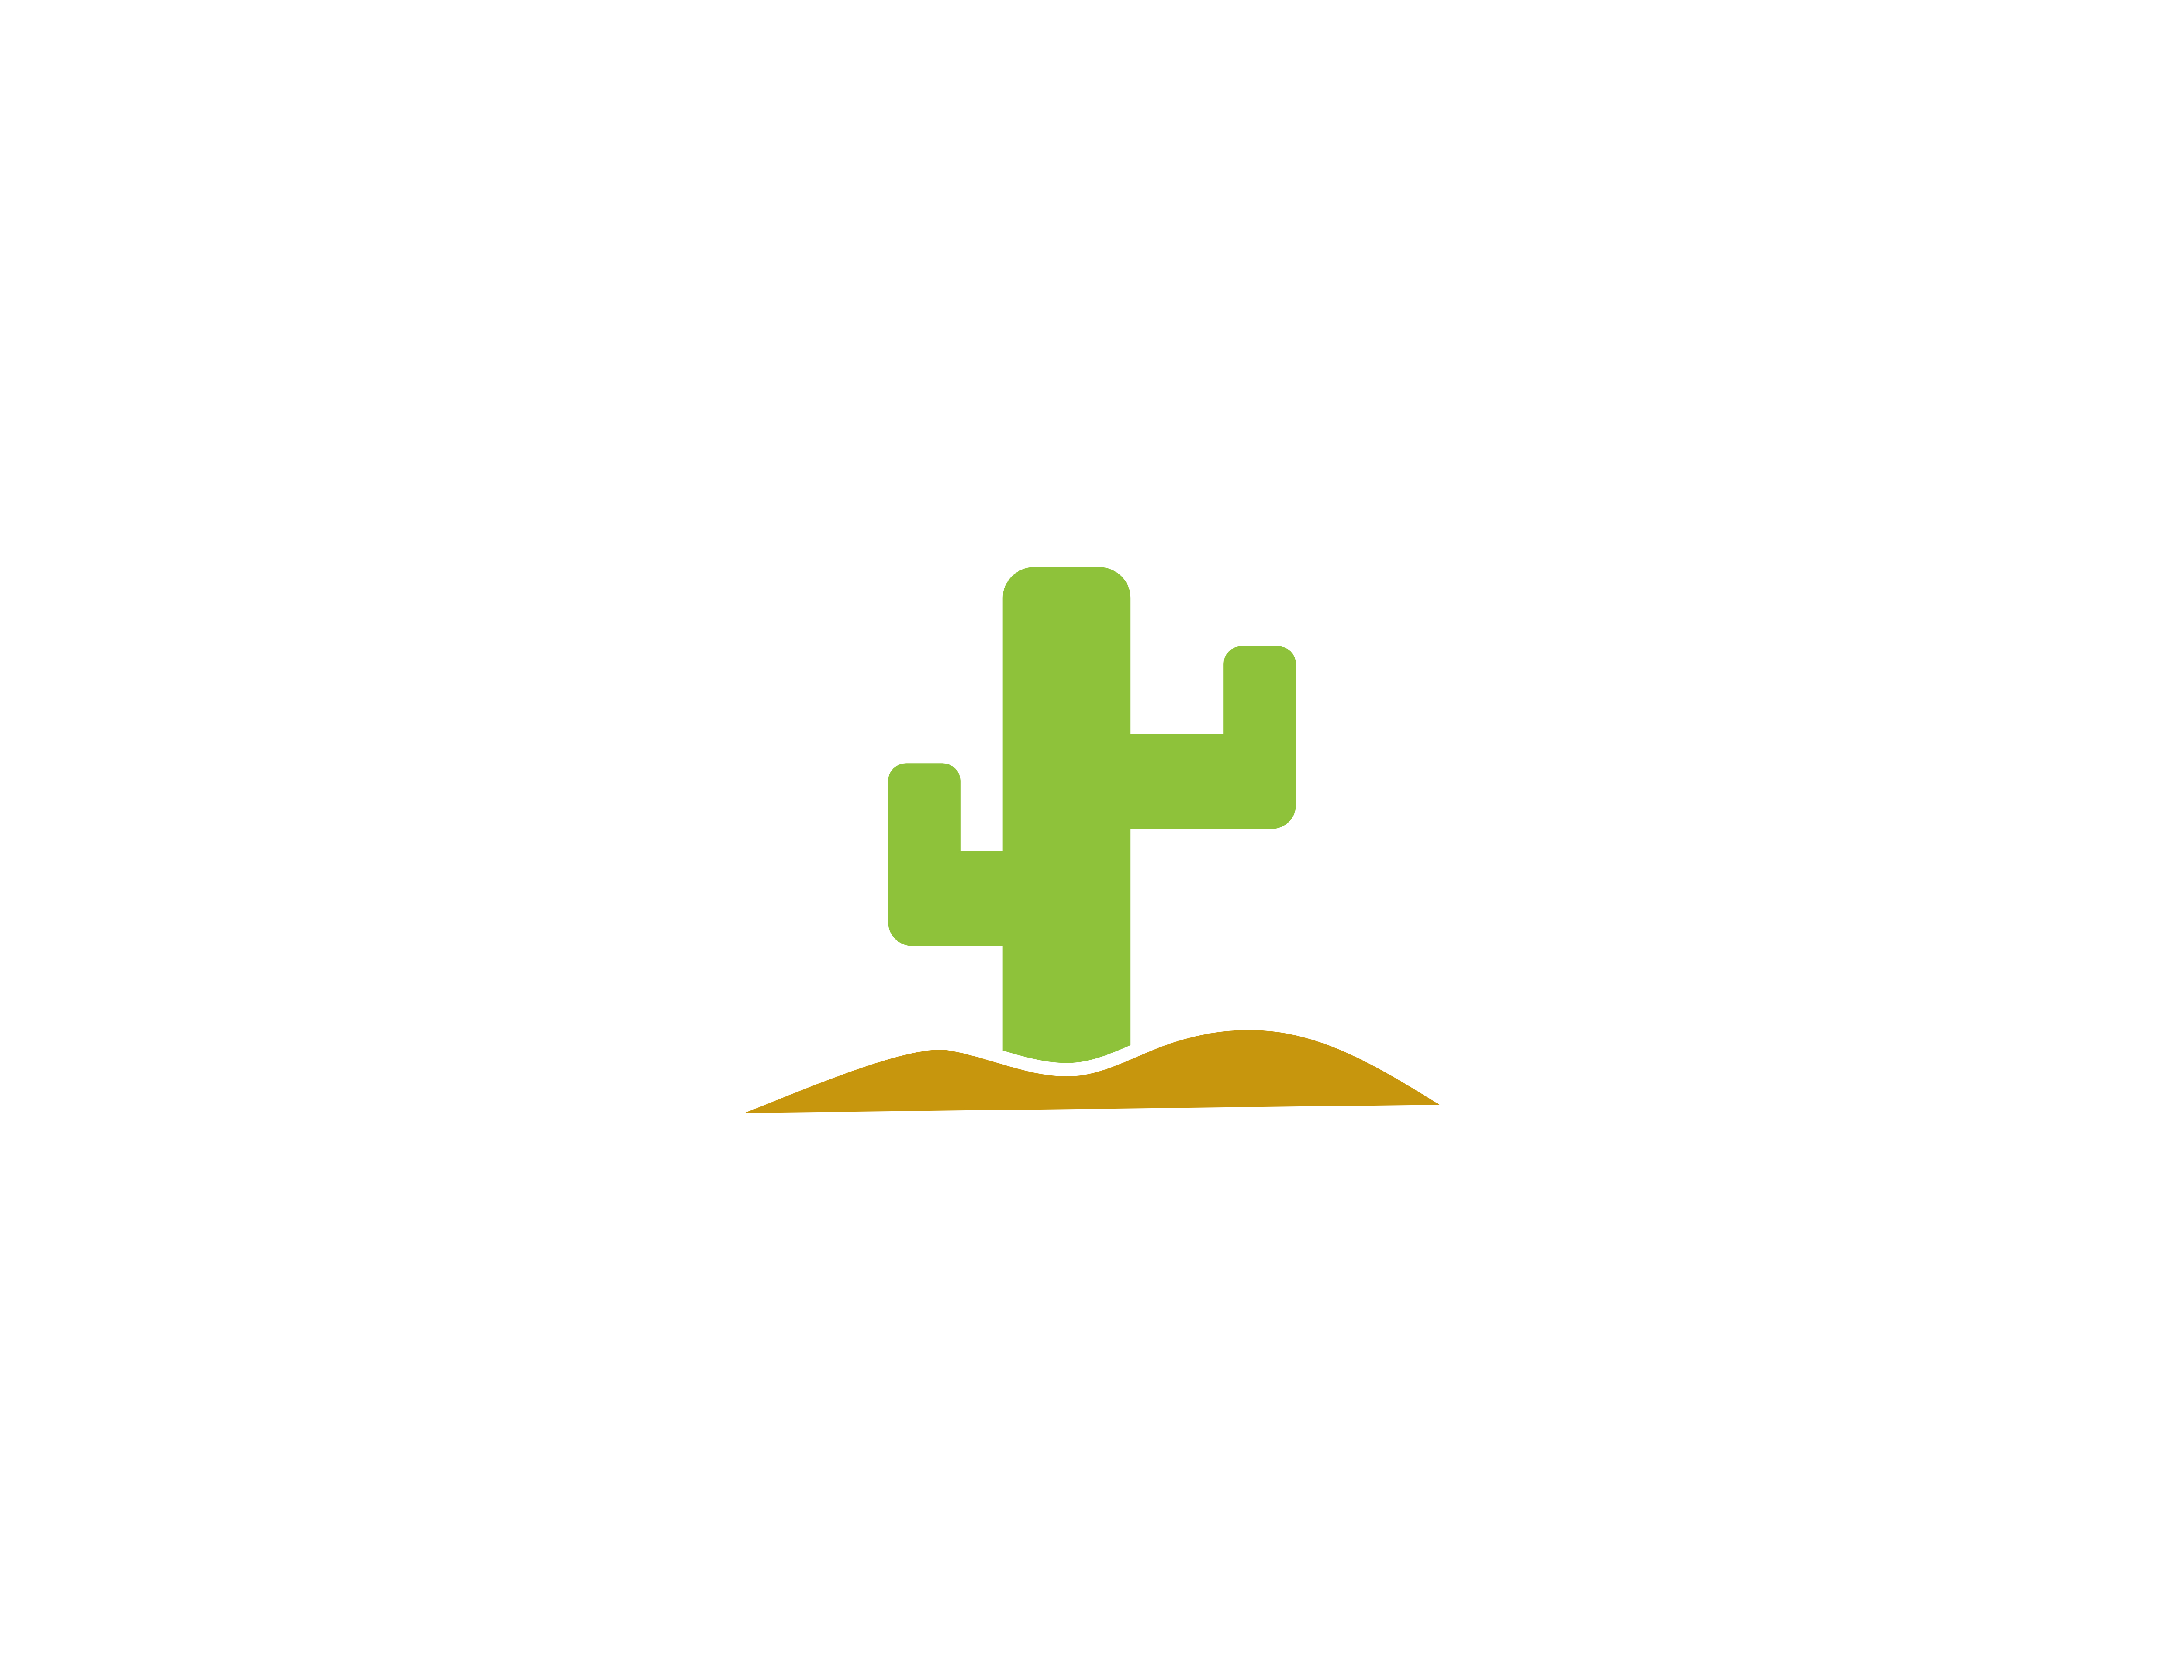 Download Free Cactus Logo Graphic By Meisuseno Creative Fabrica for Cricut Explore, Silhouette and other cutting machines.